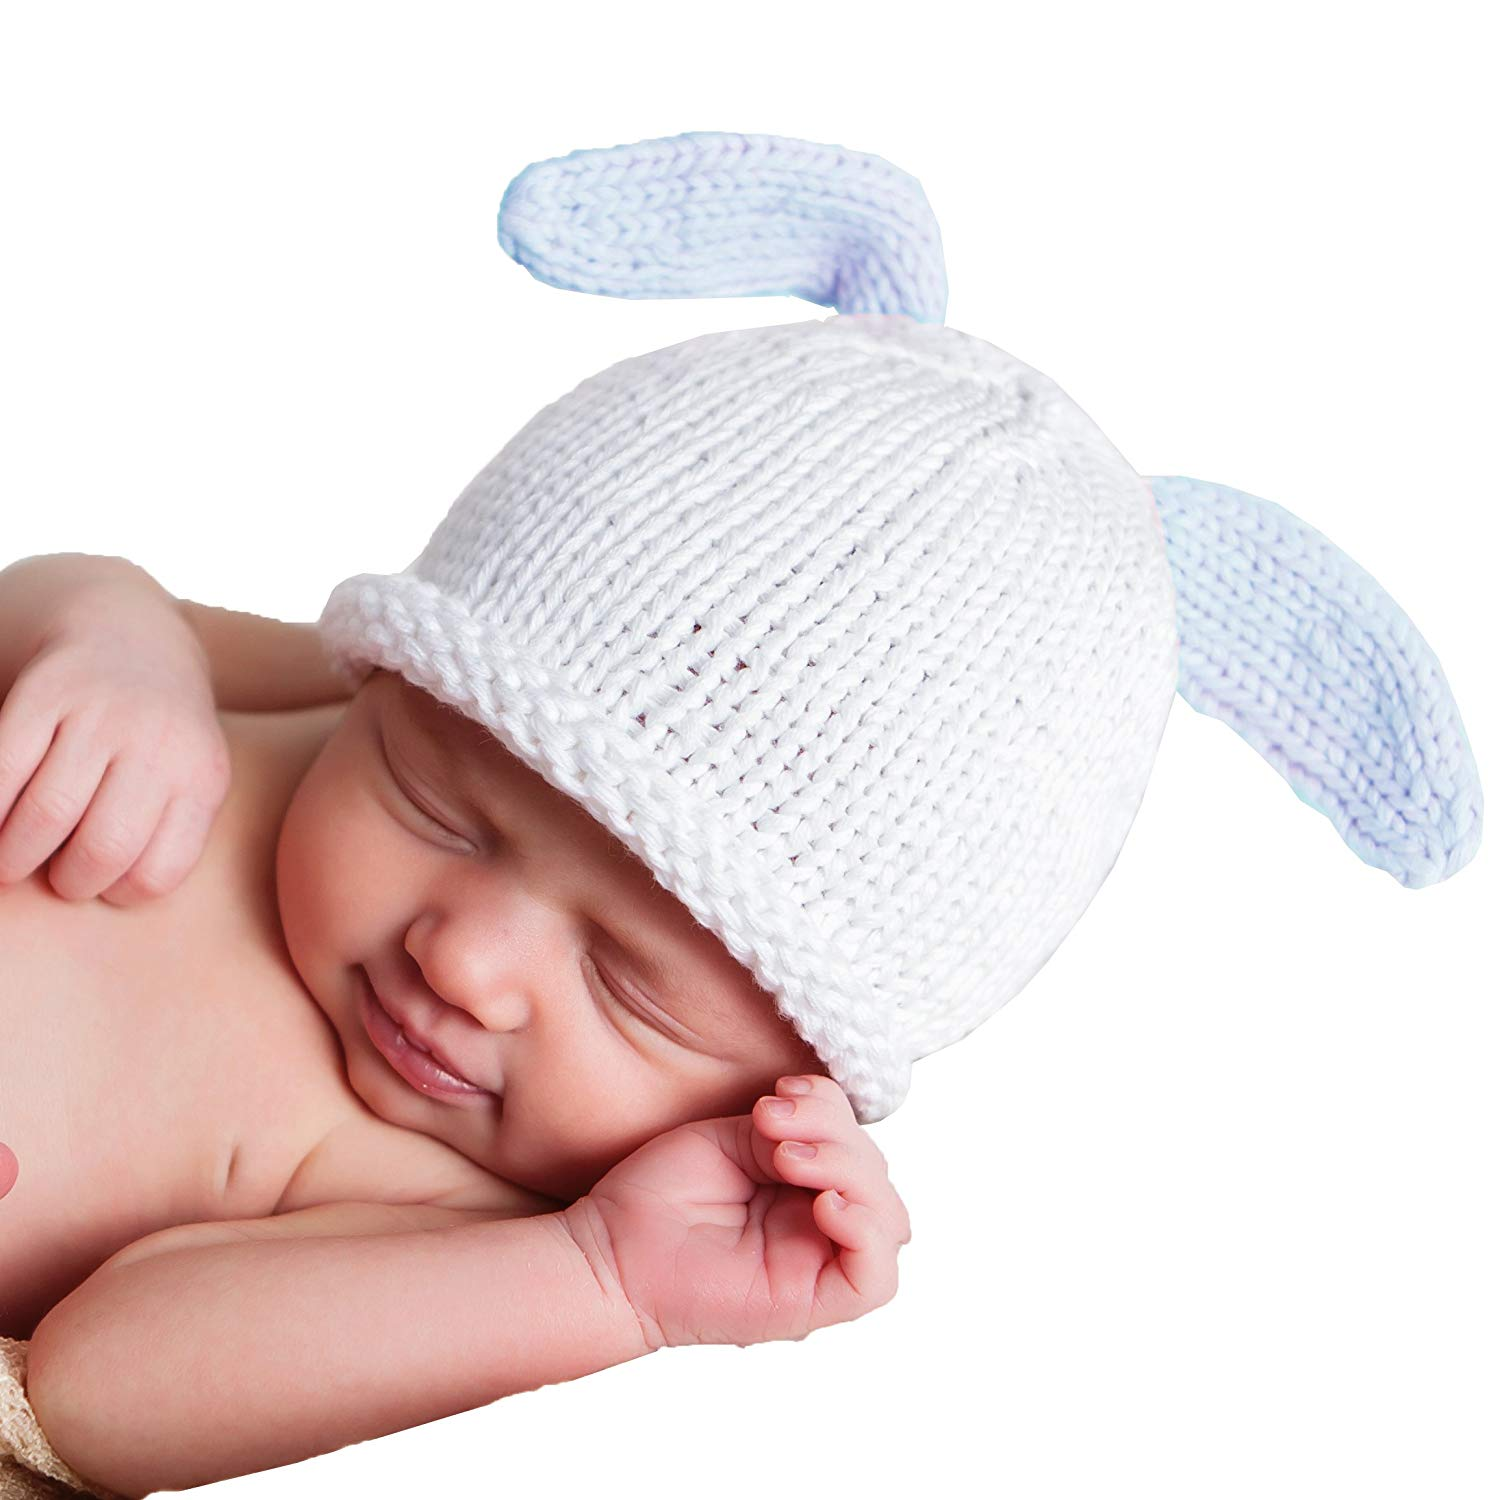 763c39ed6b2 Get Quotations · Huggalugs Baby Bunny Newborn Boy or Girl Hospital Hat in 2  Color Choices